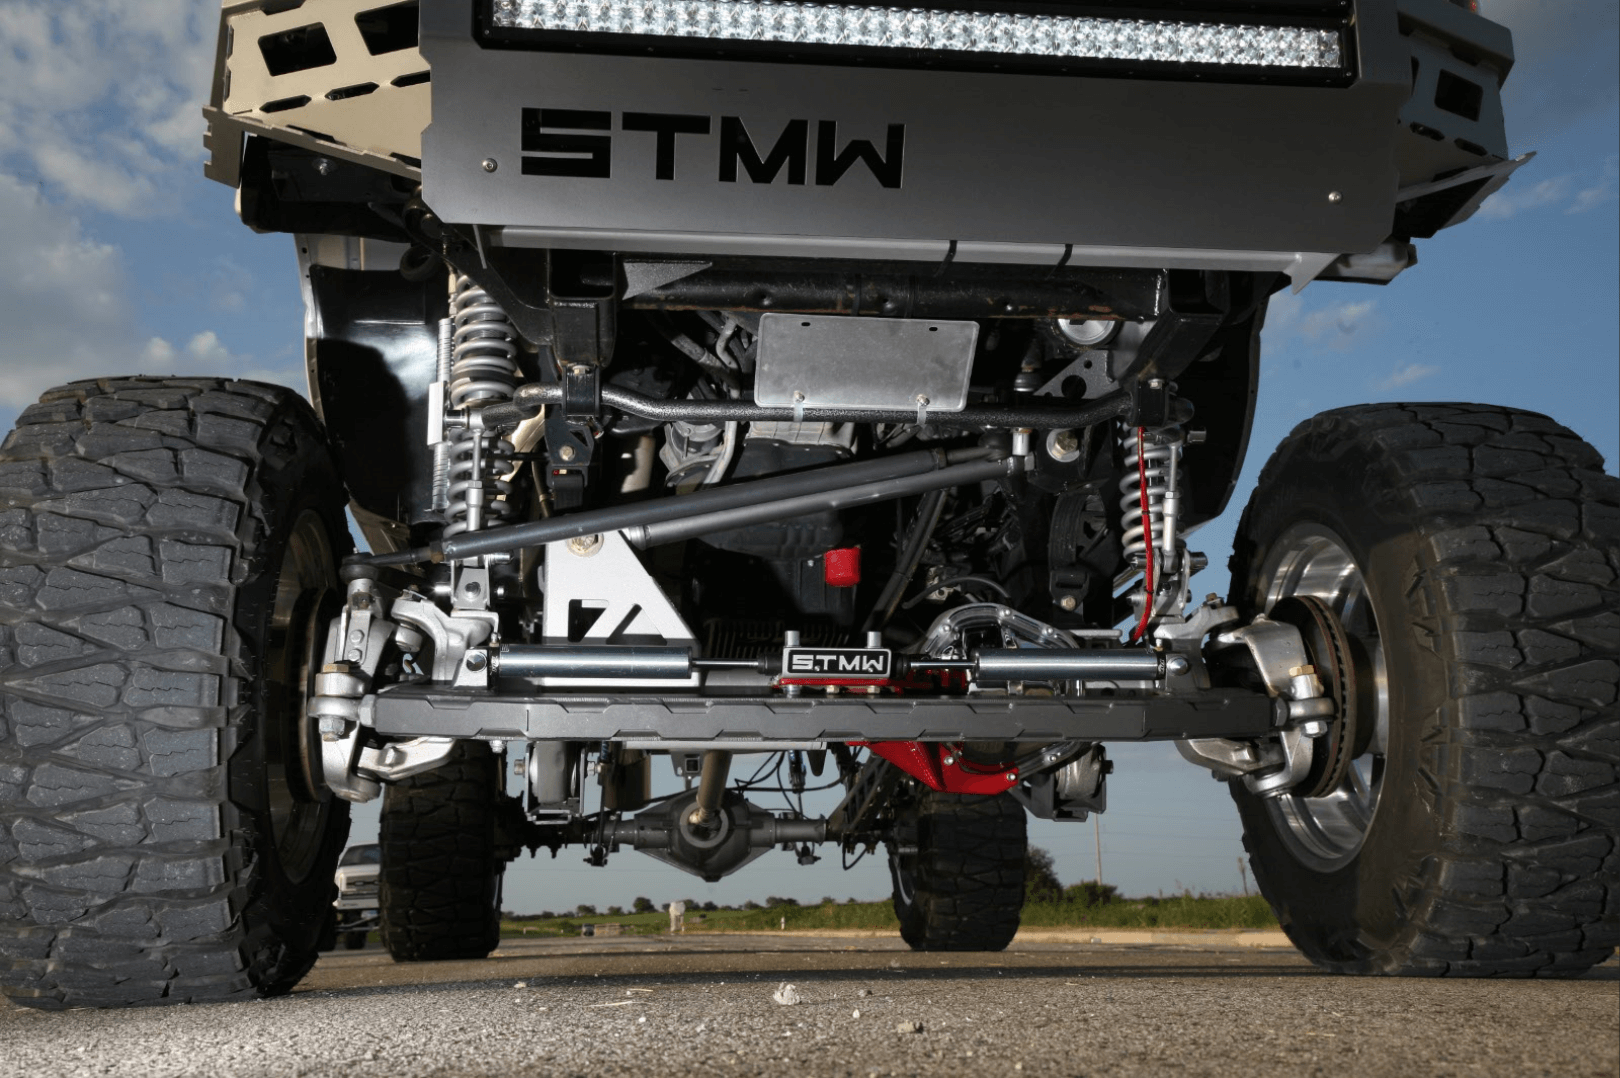 """The Naivars put a lot of work into the front suspension and steering gear to ensure the Silverado would steer accurately, even with a solid front axle and a 12-inch lift. """"I like things to work right,"""" explains brother Brandon."""